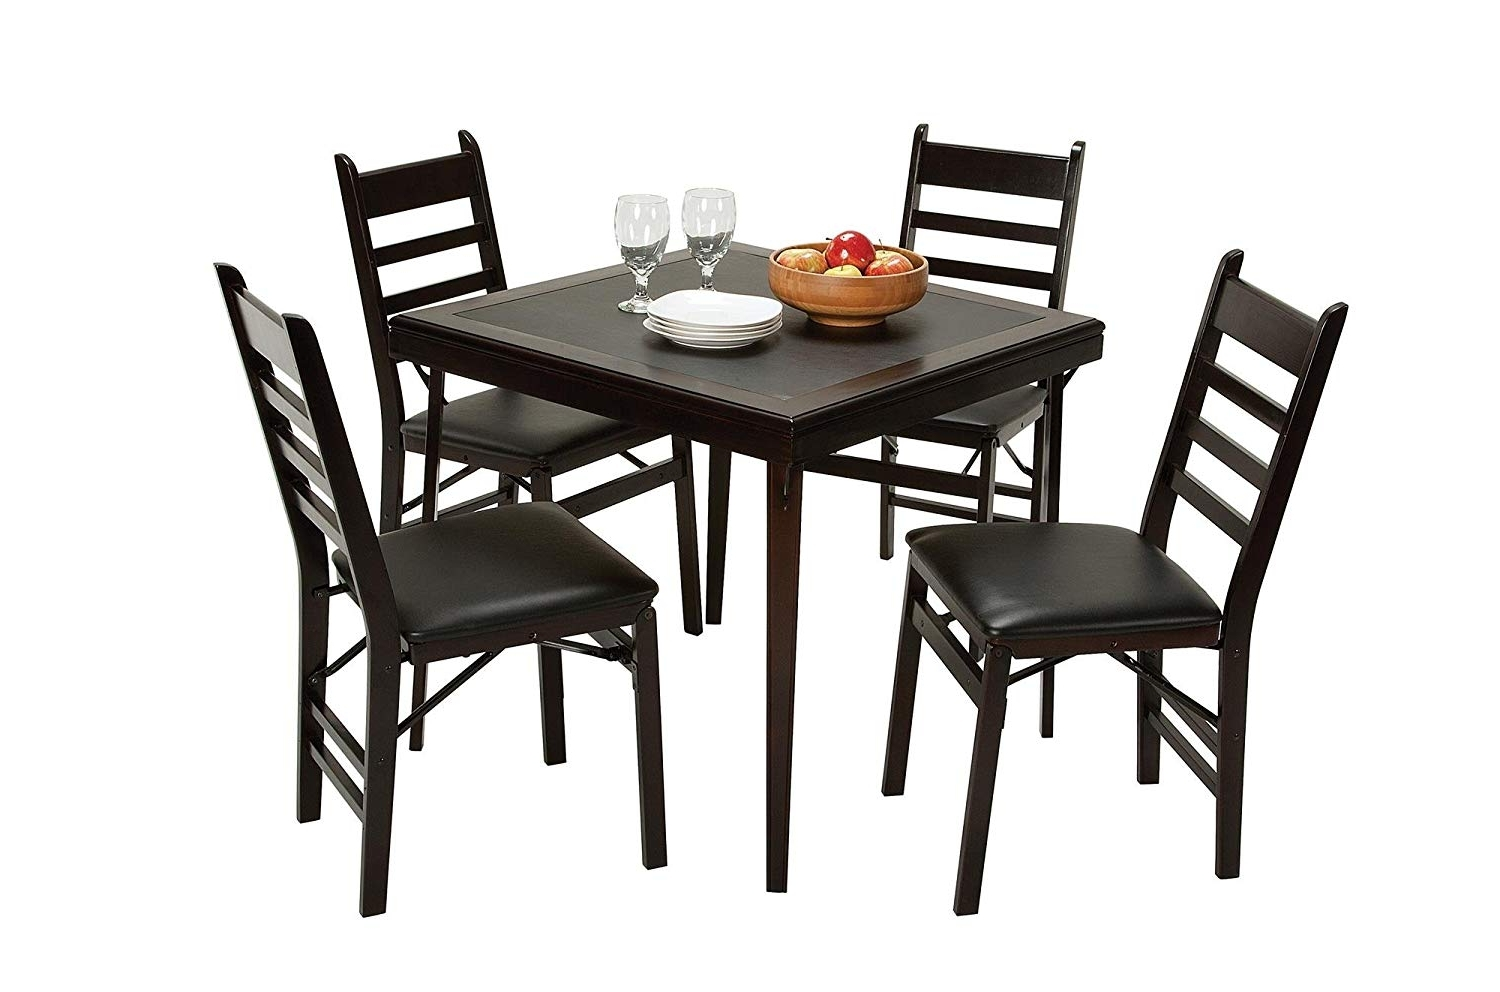 Current Black Folding Dining Tables And Chairs Throughout Amazon: Cosco Folding Espresso Wood Table Square With Vinyl (View 8 of 25)